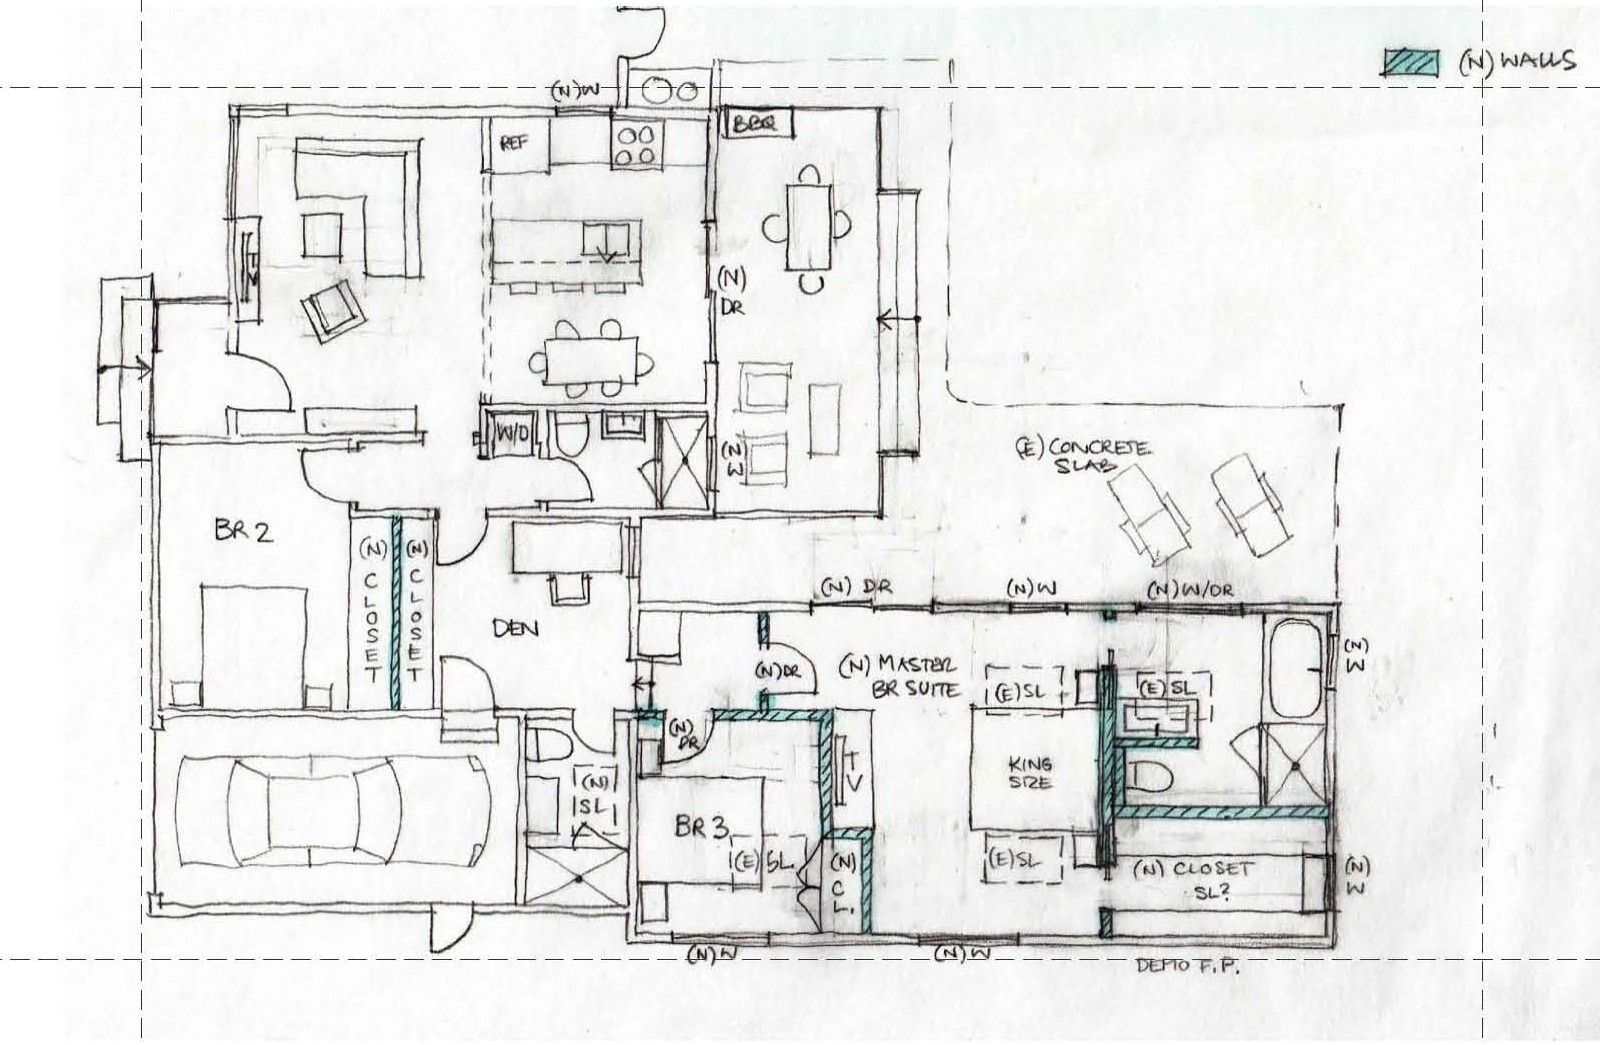 Best Design Easy Interior Design Sketches With 3d Interior